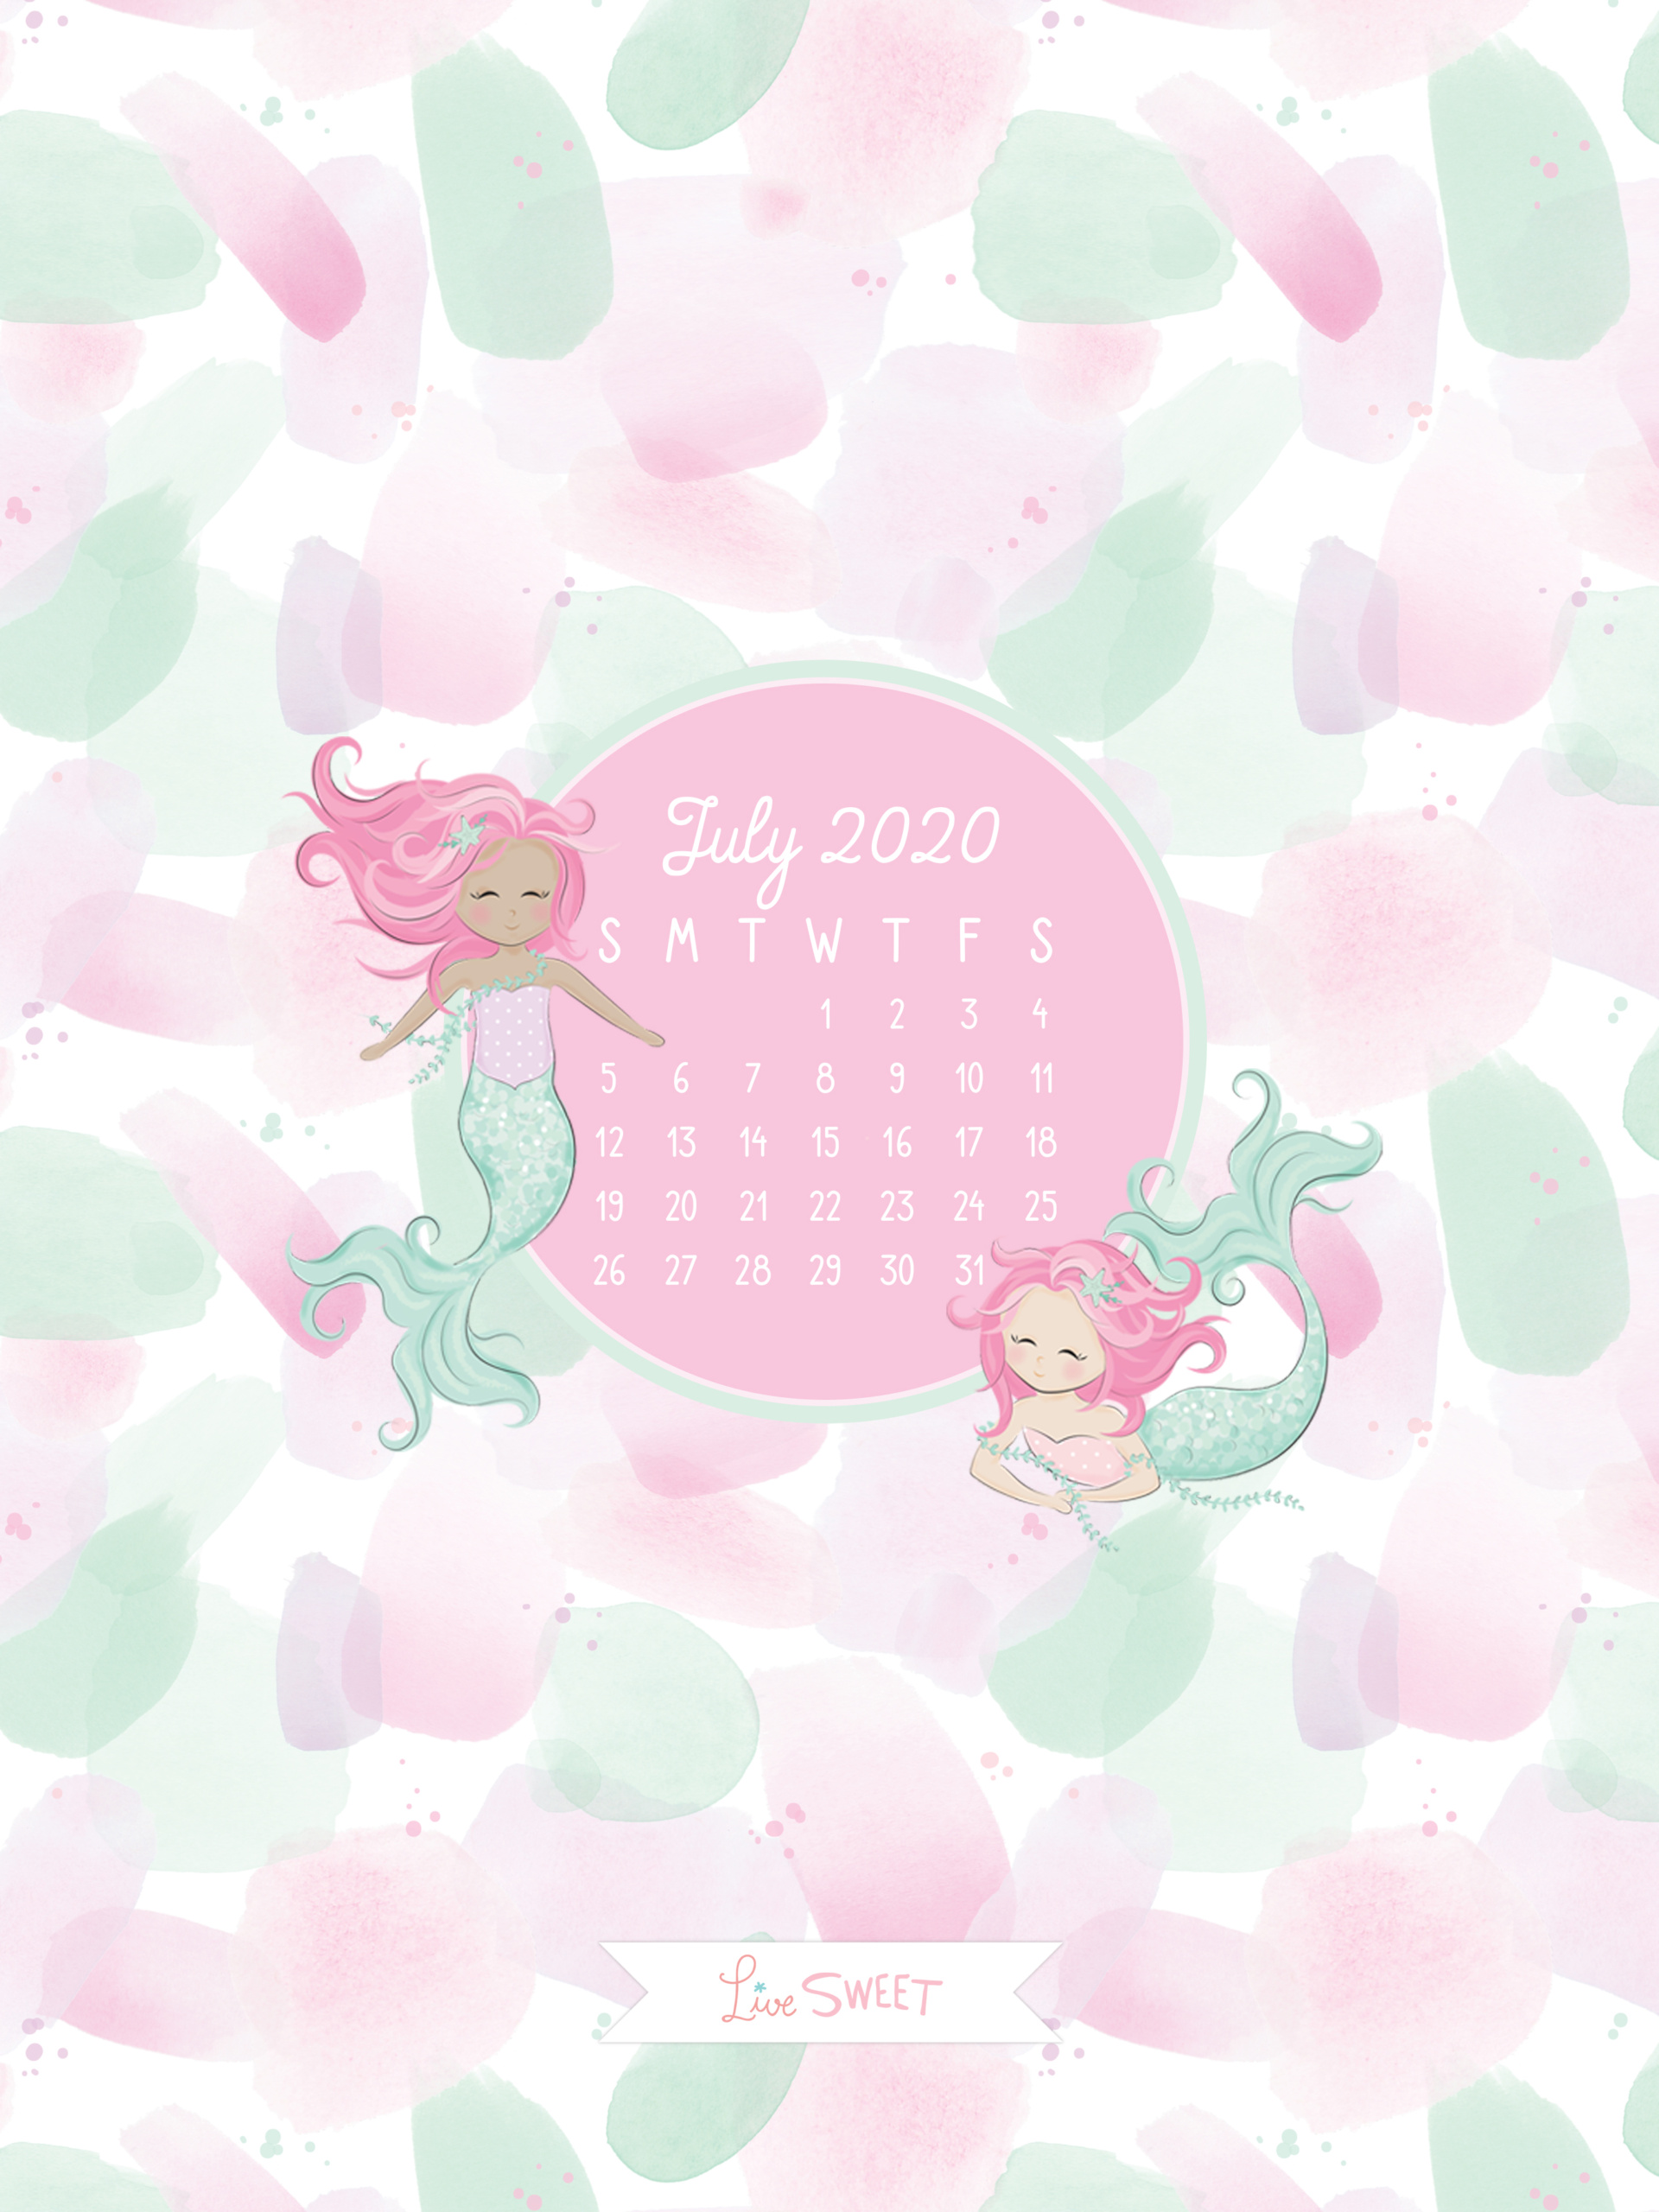 July 2020 Free Wallpapers Live Sweet